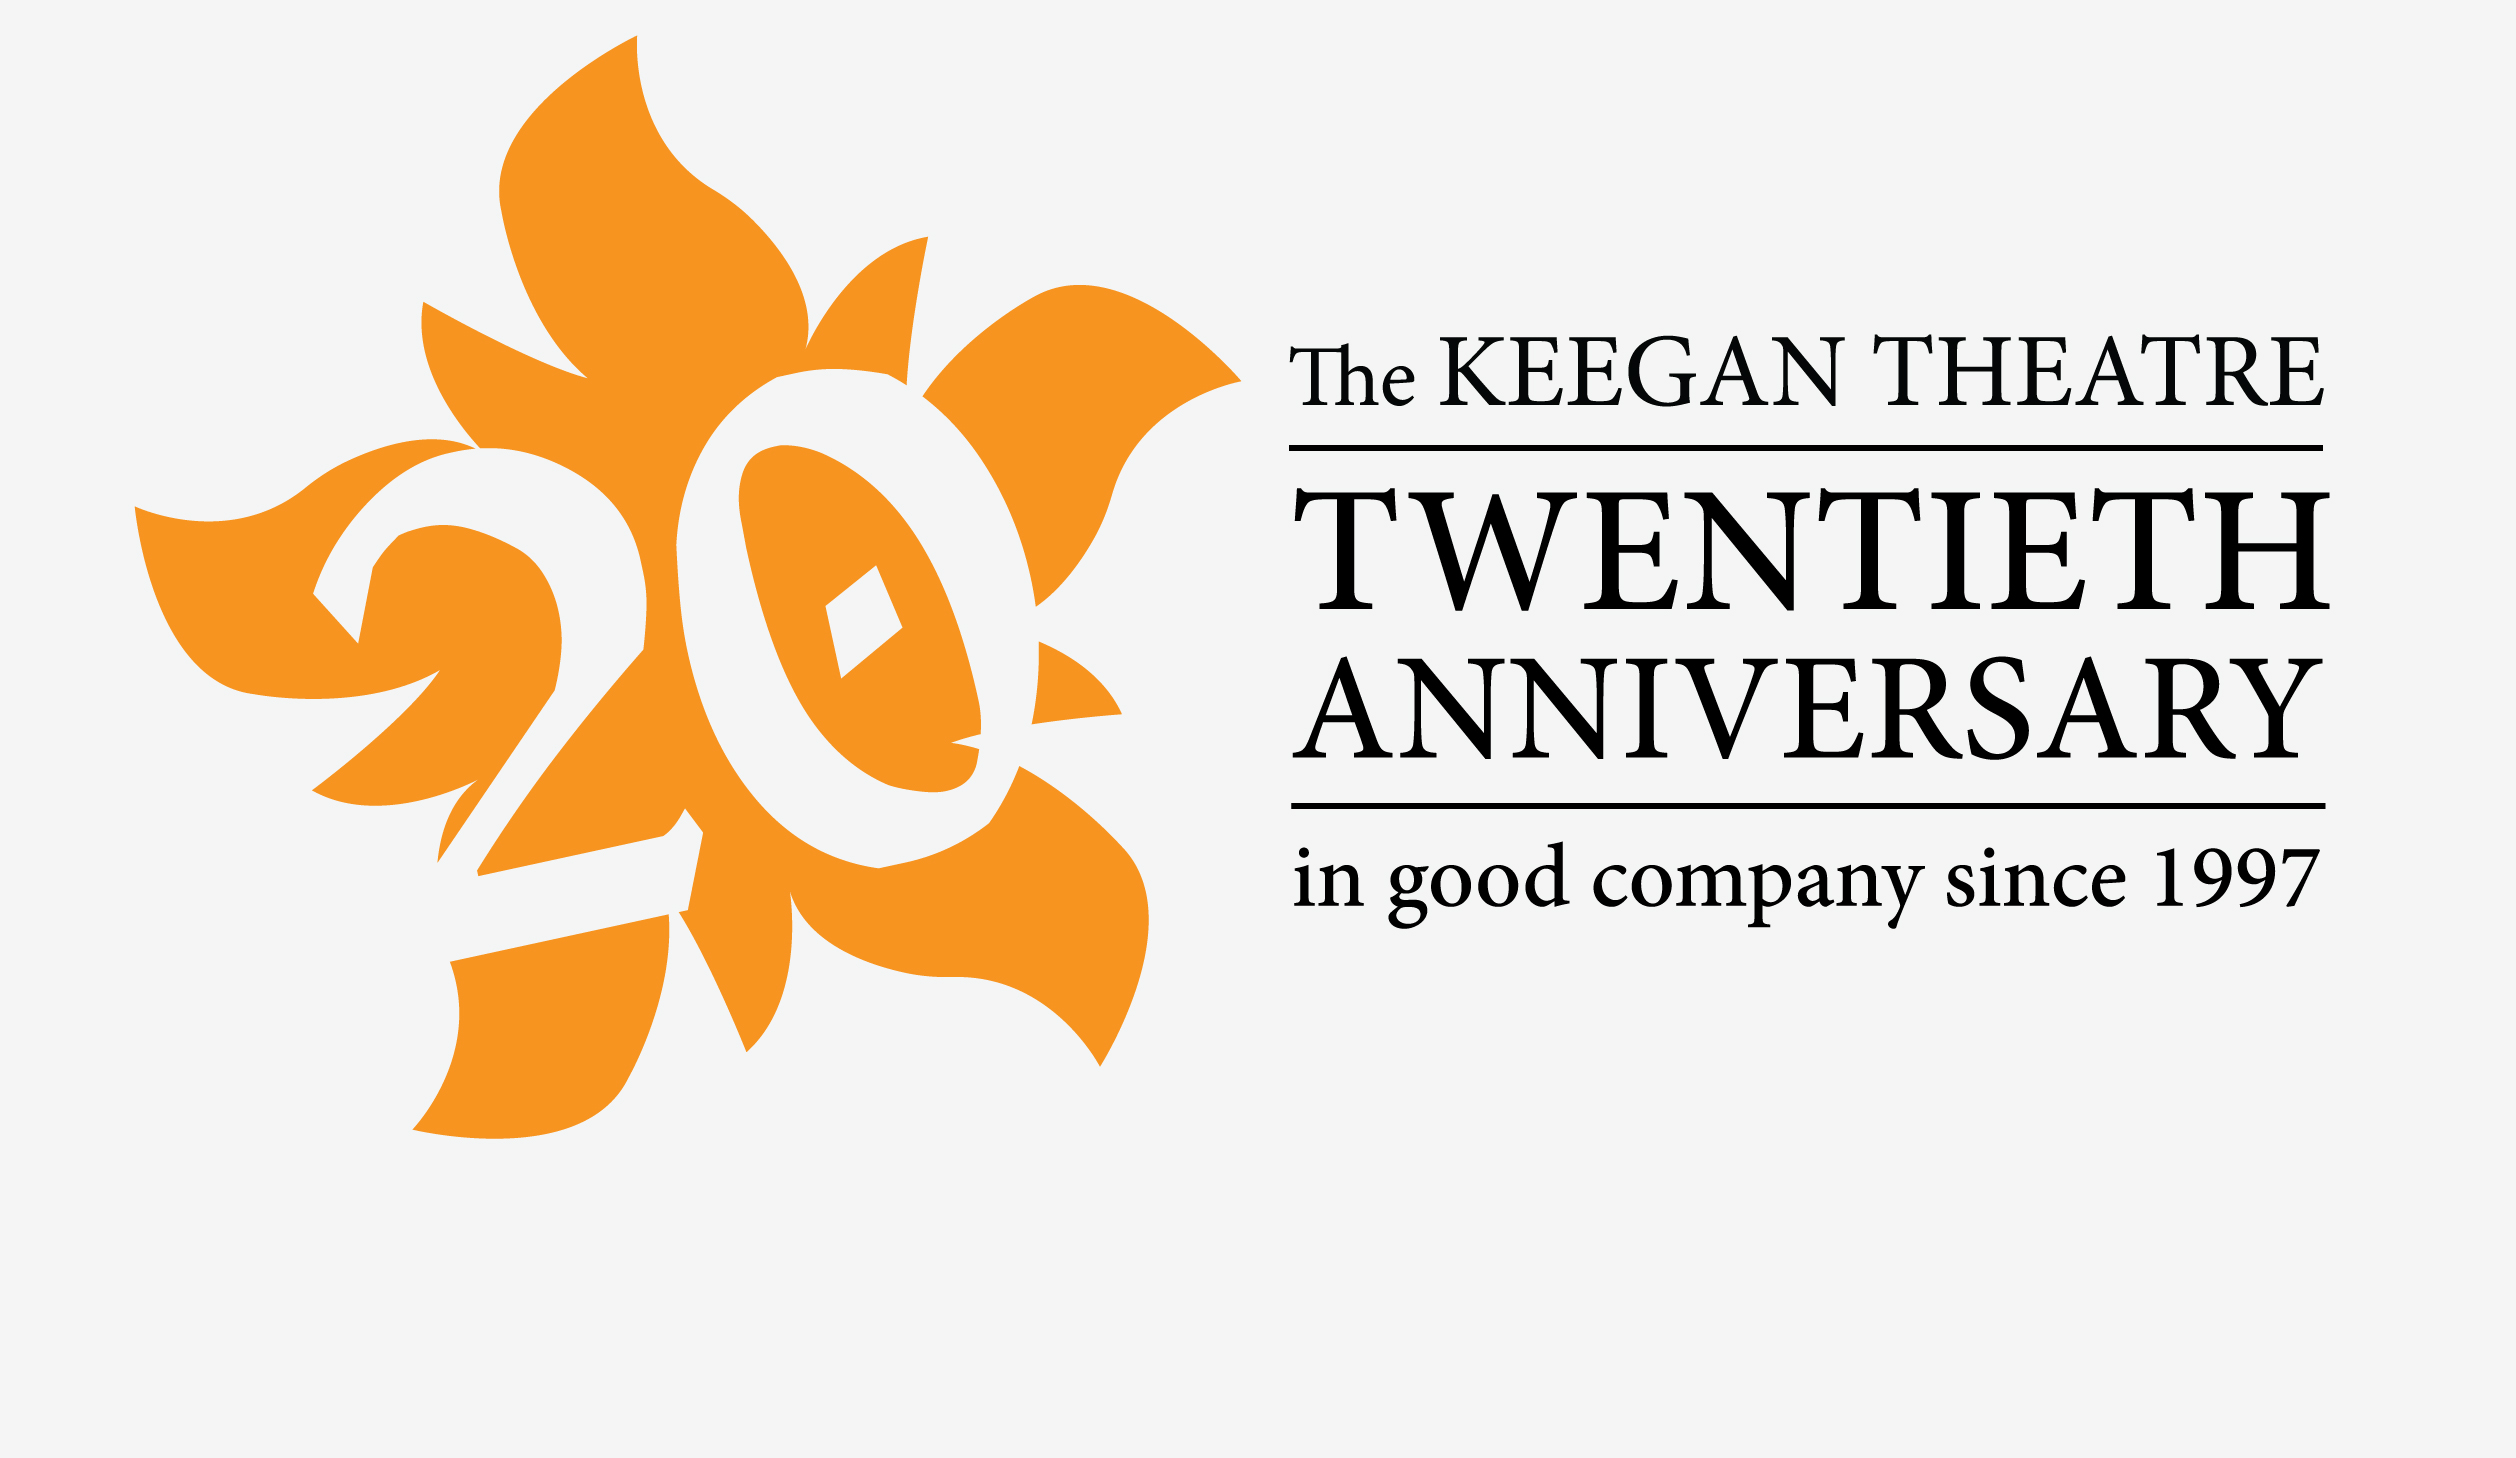 The Keegan Theatre Twentieth Anniversary